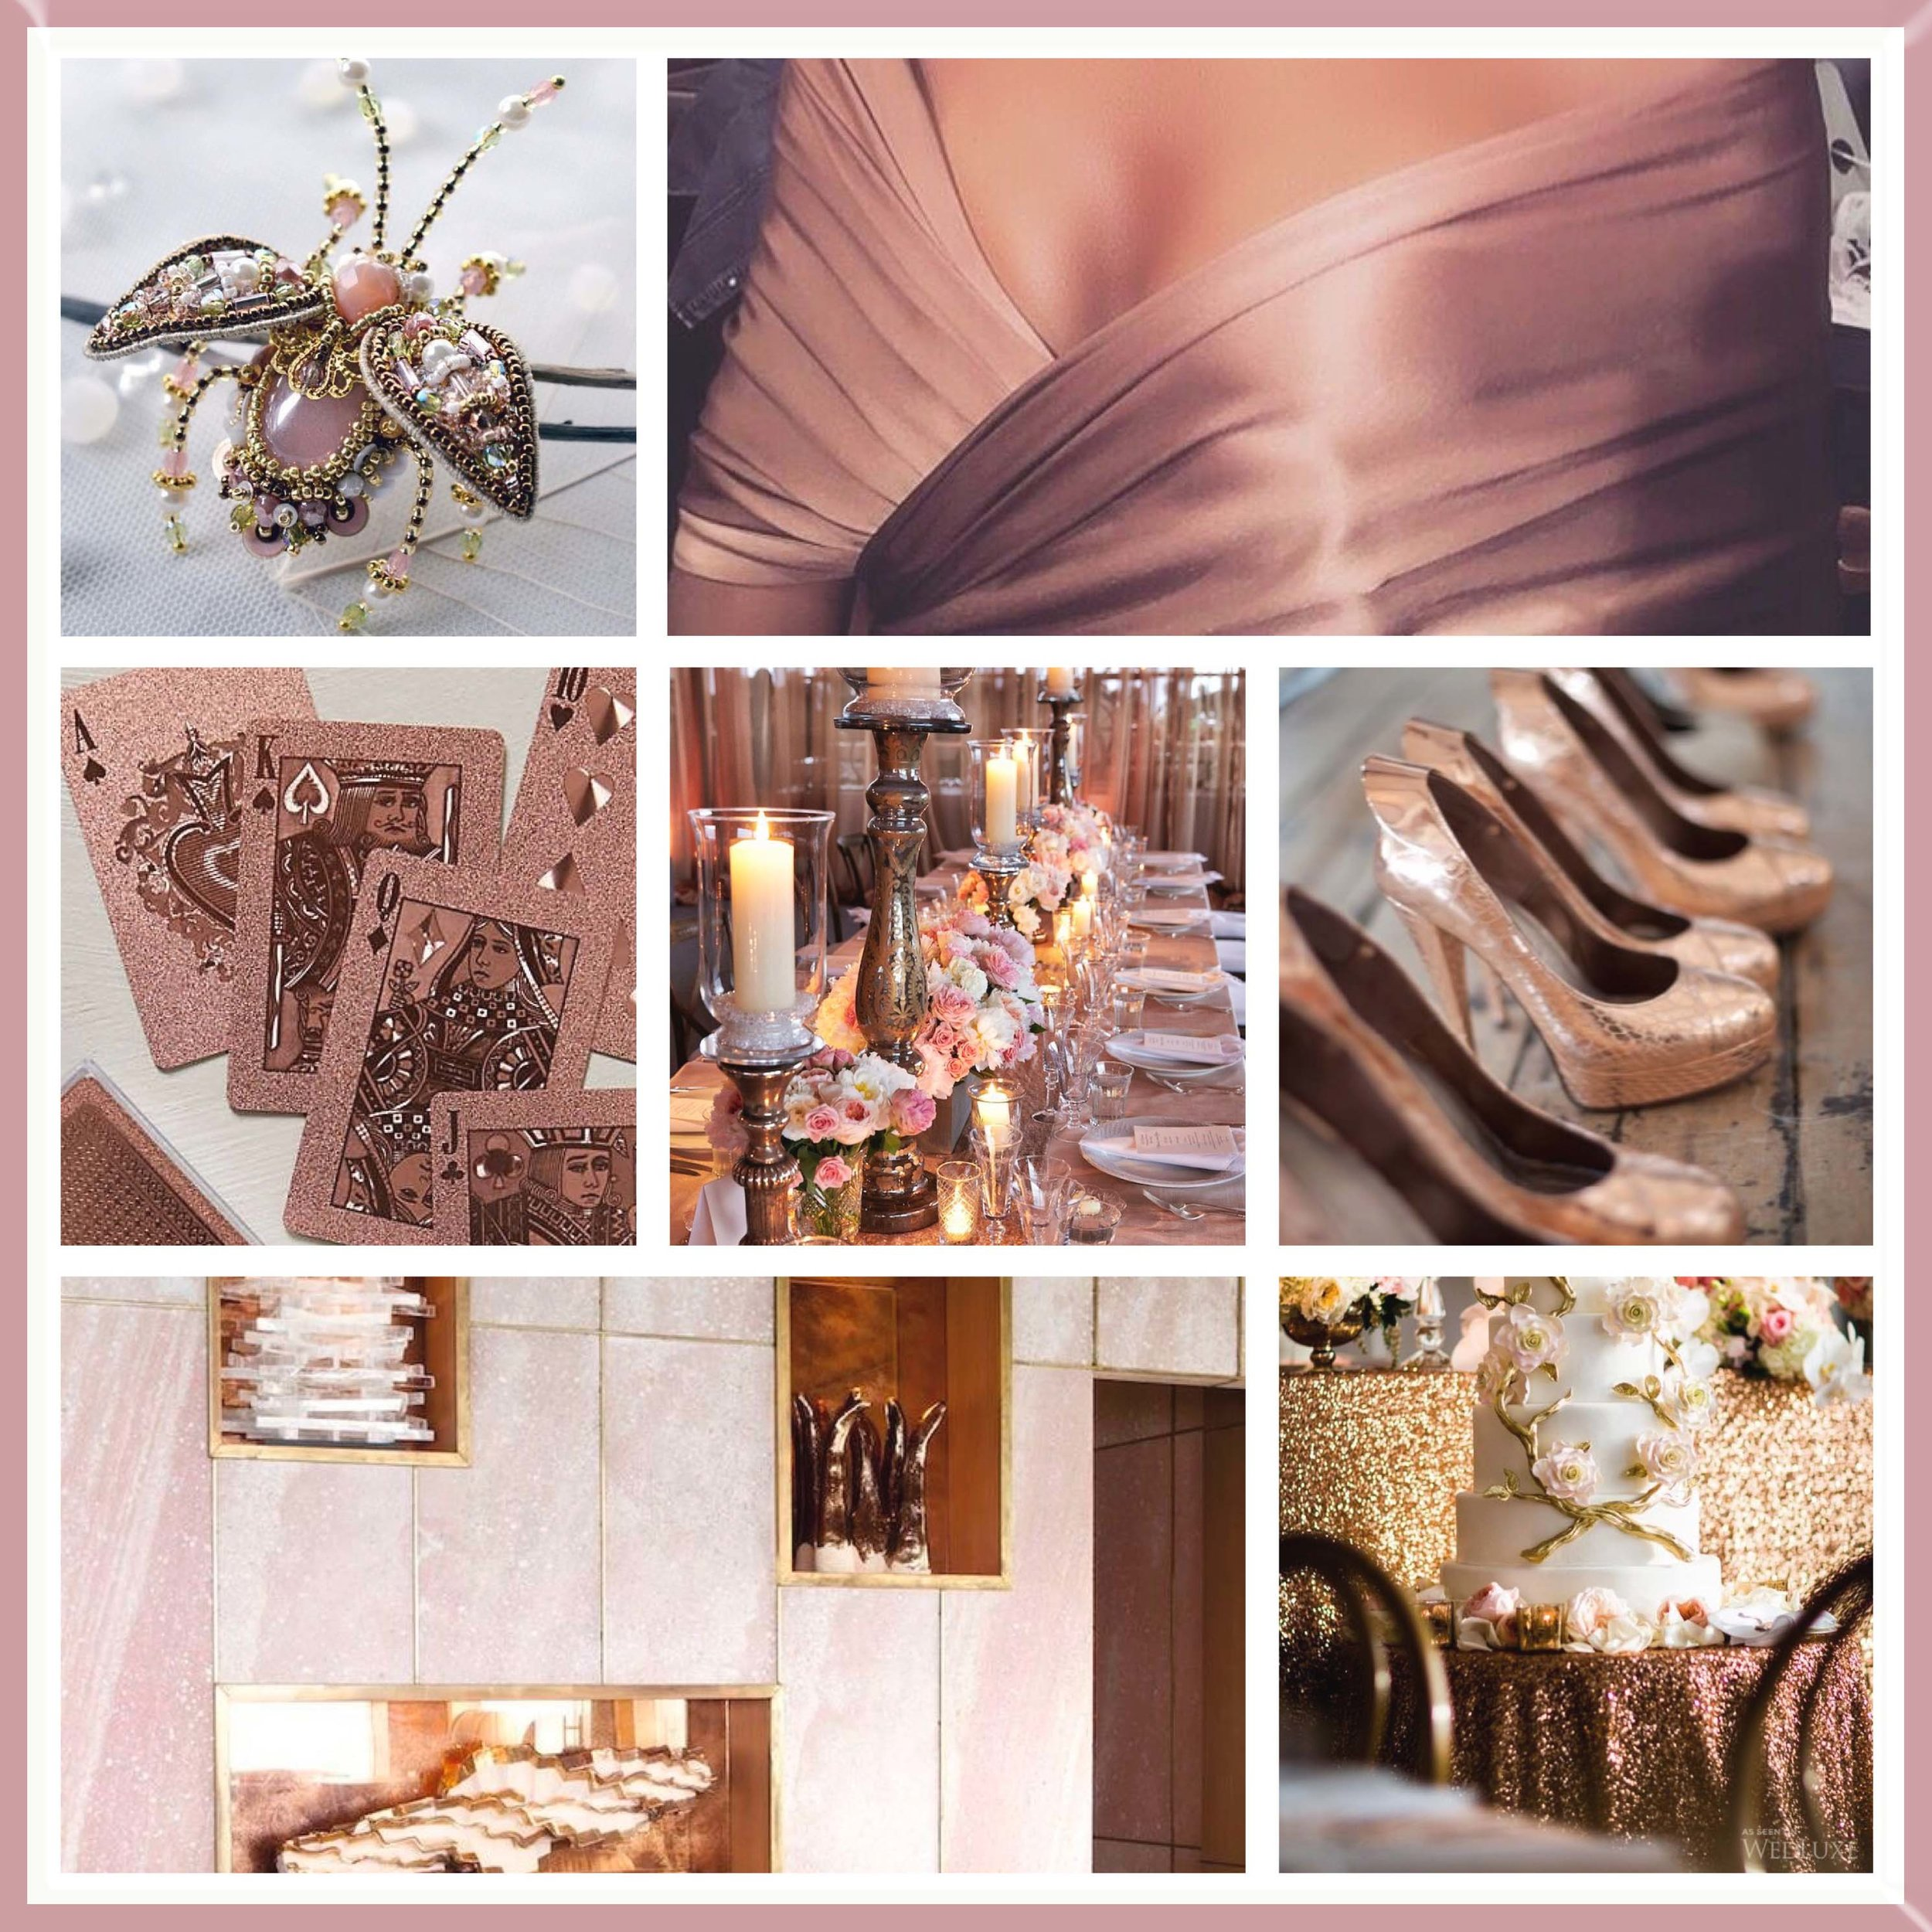 Blush & Rose Gold moodboard designed by Luxe by Minihaha & co.